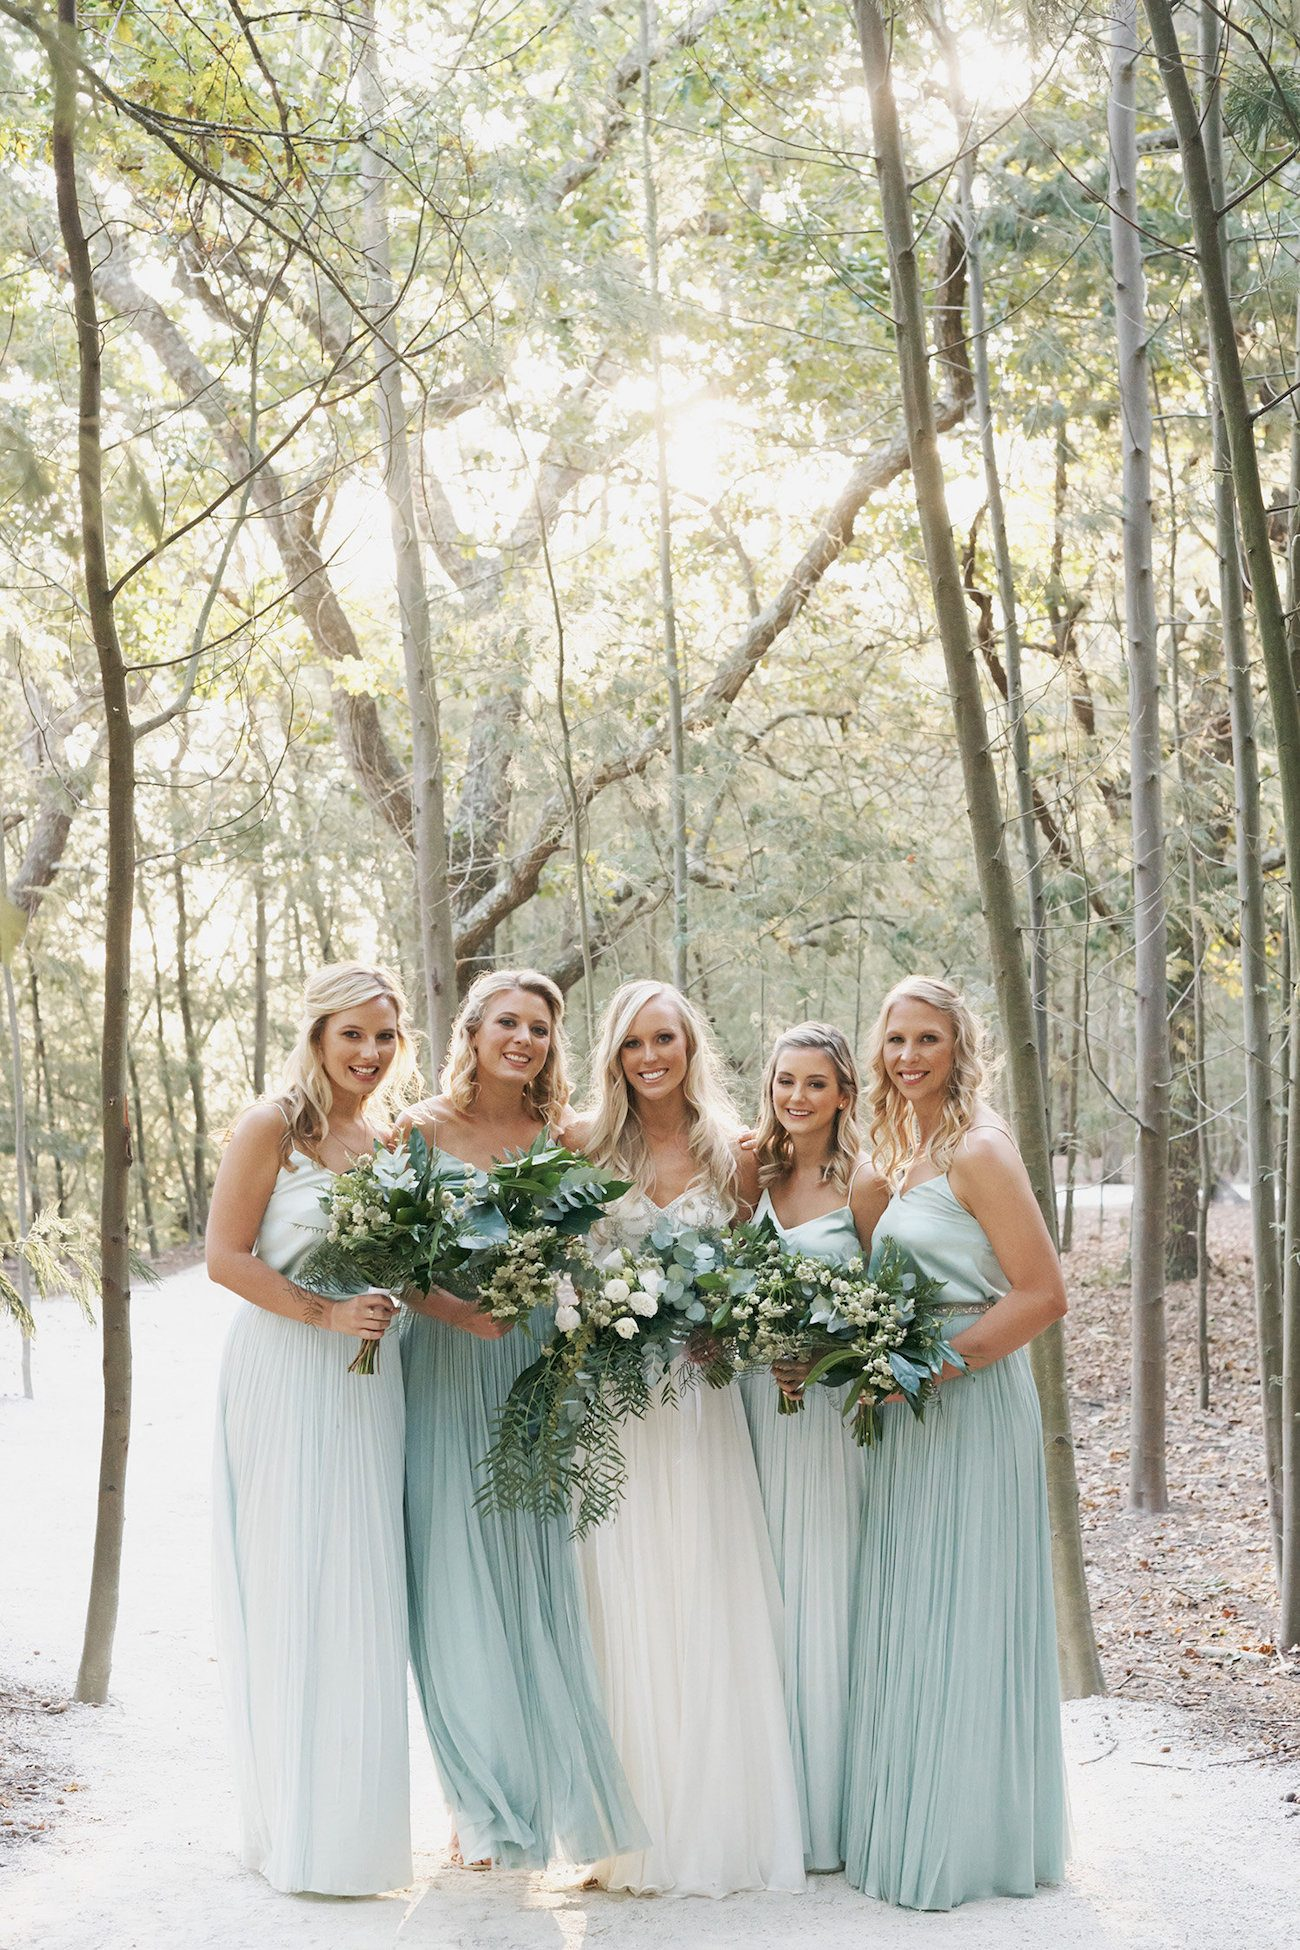 Mint Catherine Deane Bridesmaid Dresses   Image: Knit Together Photography